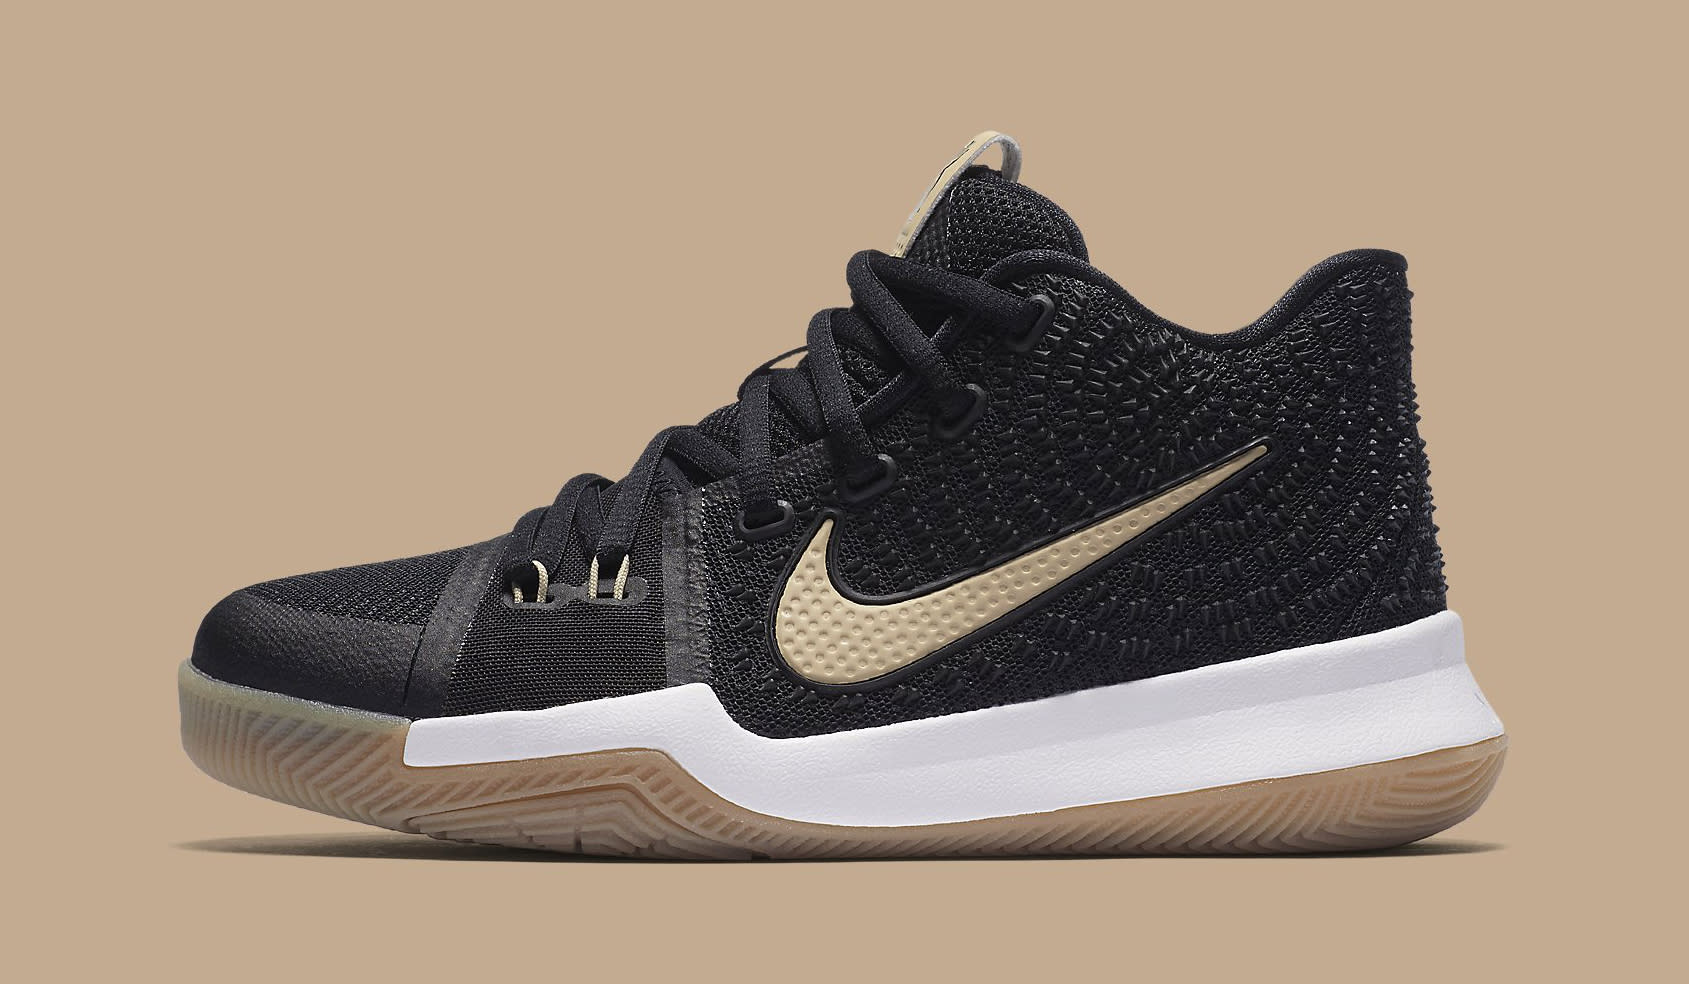 1e1f92770834 ... Black and Gum Light Brown-Linen For Sale. Nike Kyrie 3 No Diving  859466-092 Profile ...